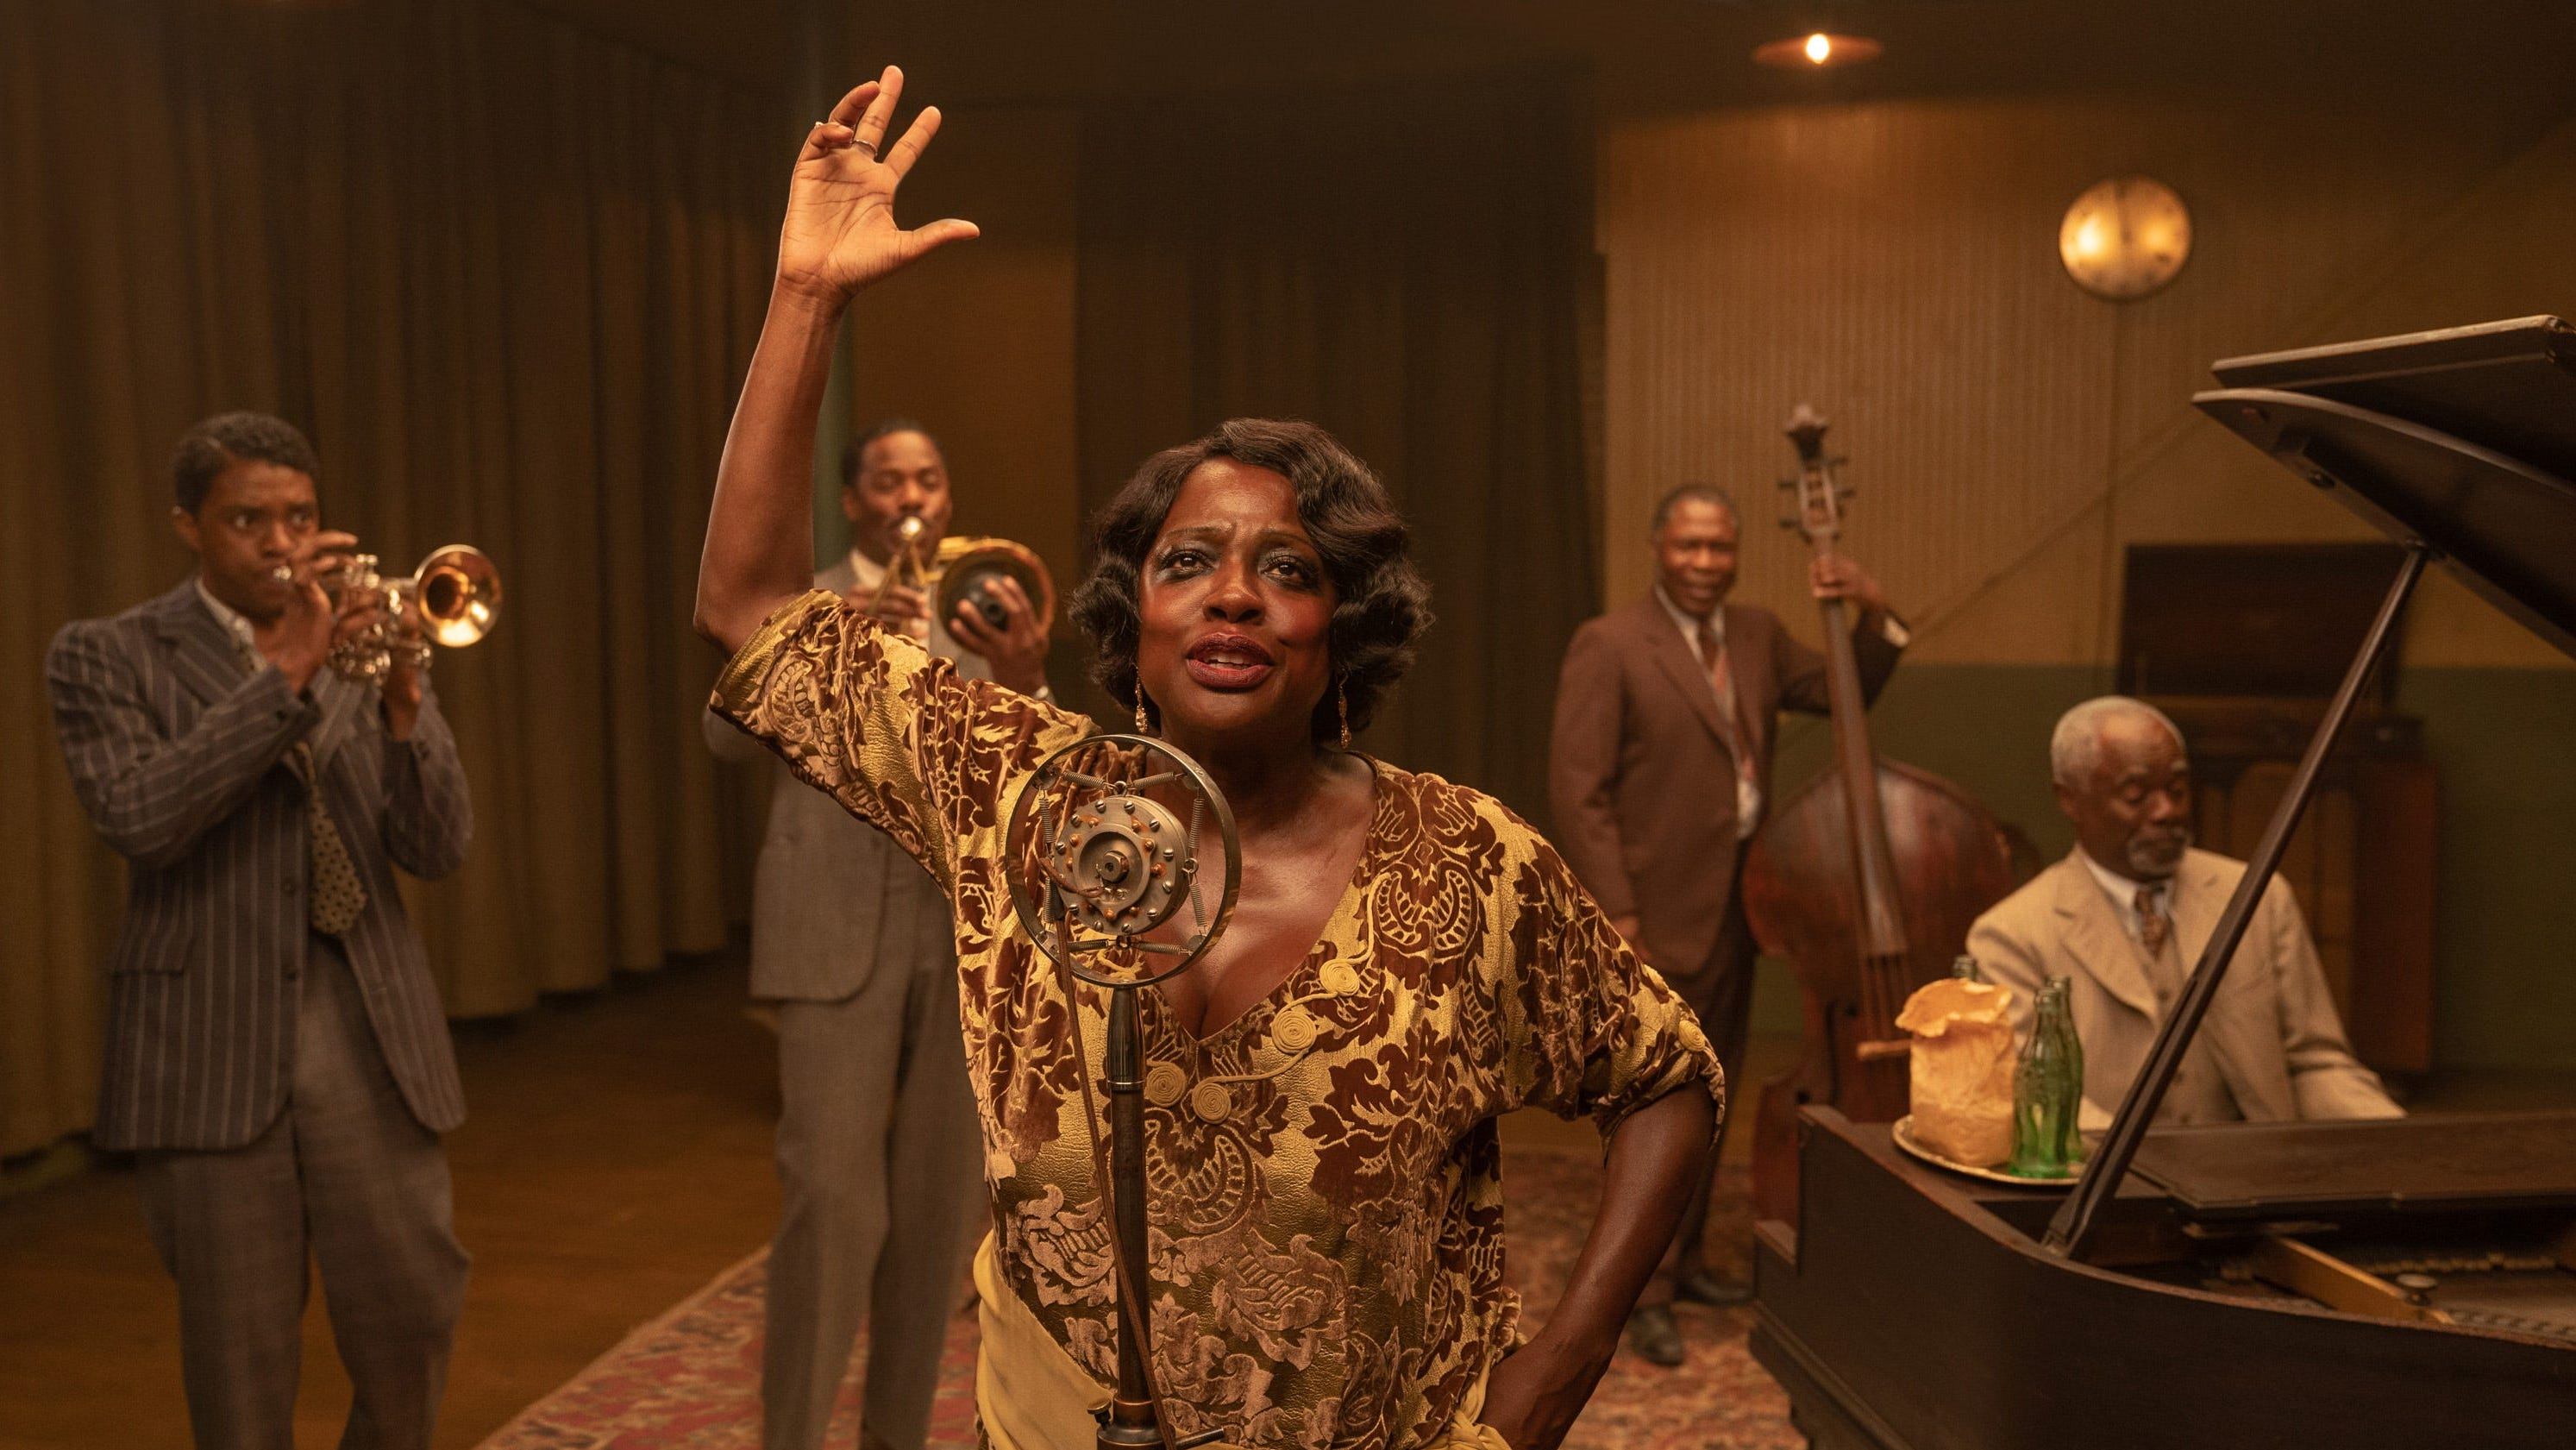 www.usatoday.com: 12 movies to watch for Women's History Month, from 'Ma Rainey's Black Bottom' to 'Homecoming'